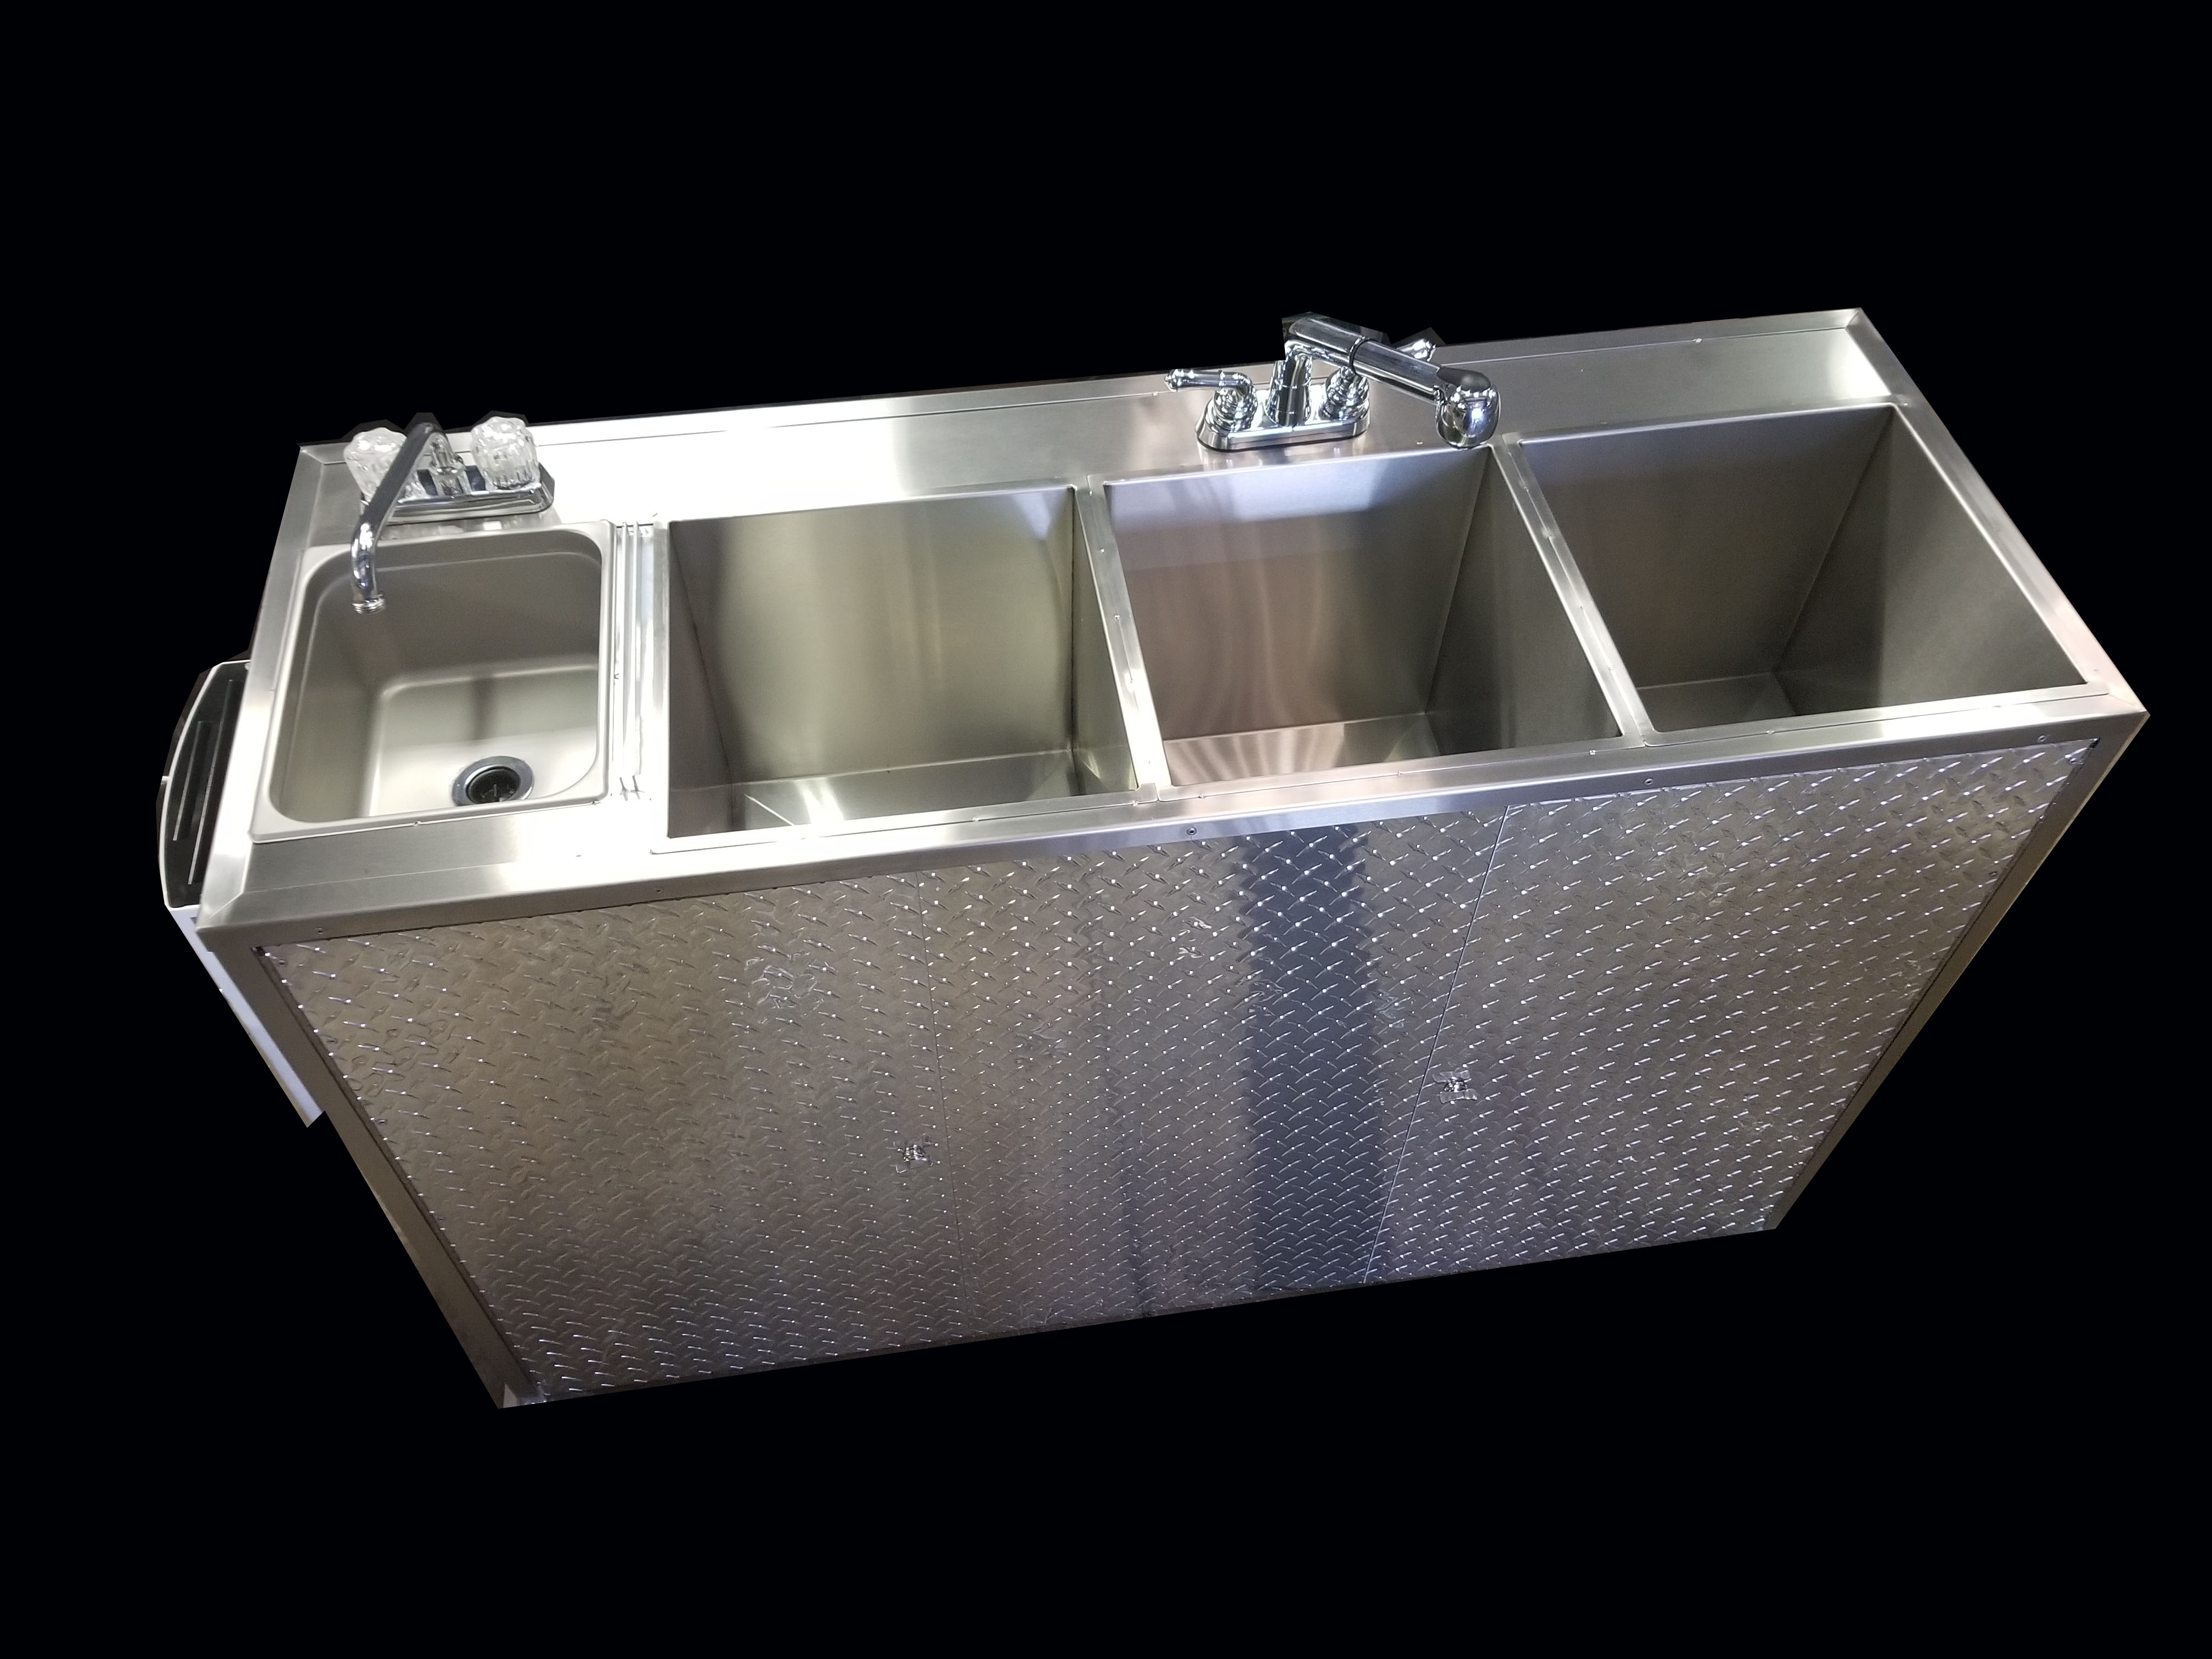 Jumbo Portable 4 Compartment Sink 110v Electric